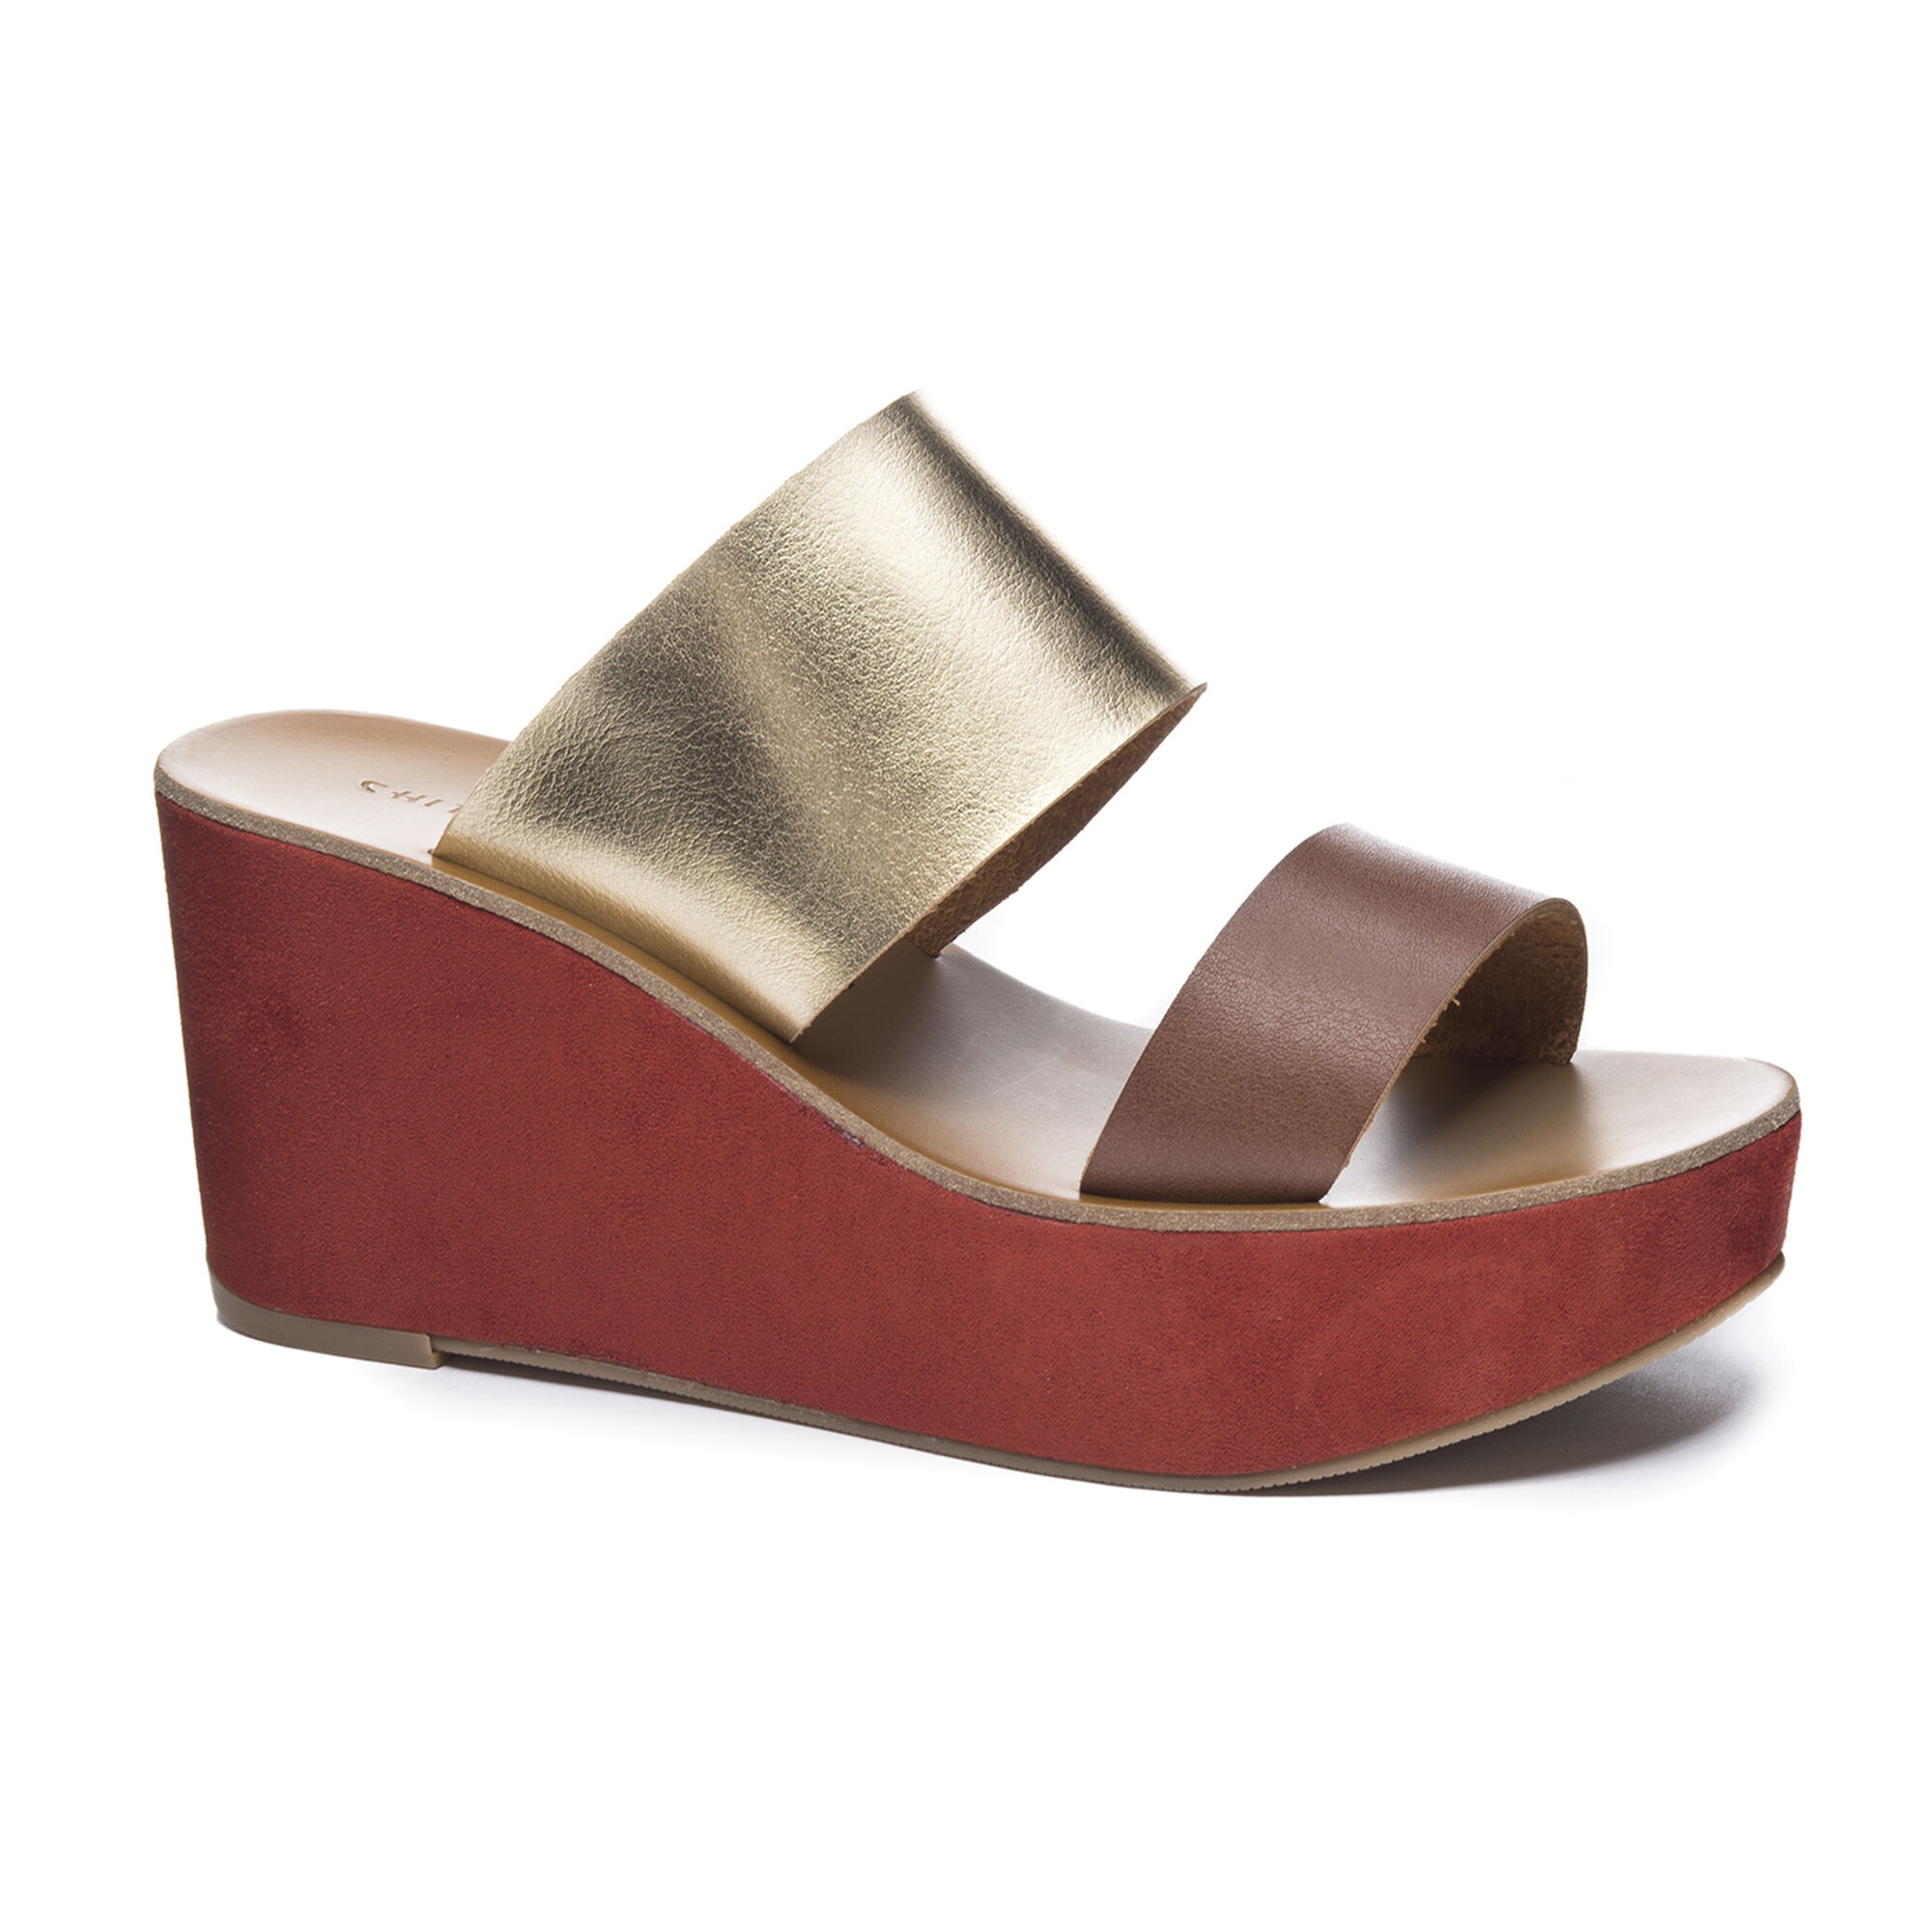 6be0aae7c0f Ollie Wedge Slide Sandal